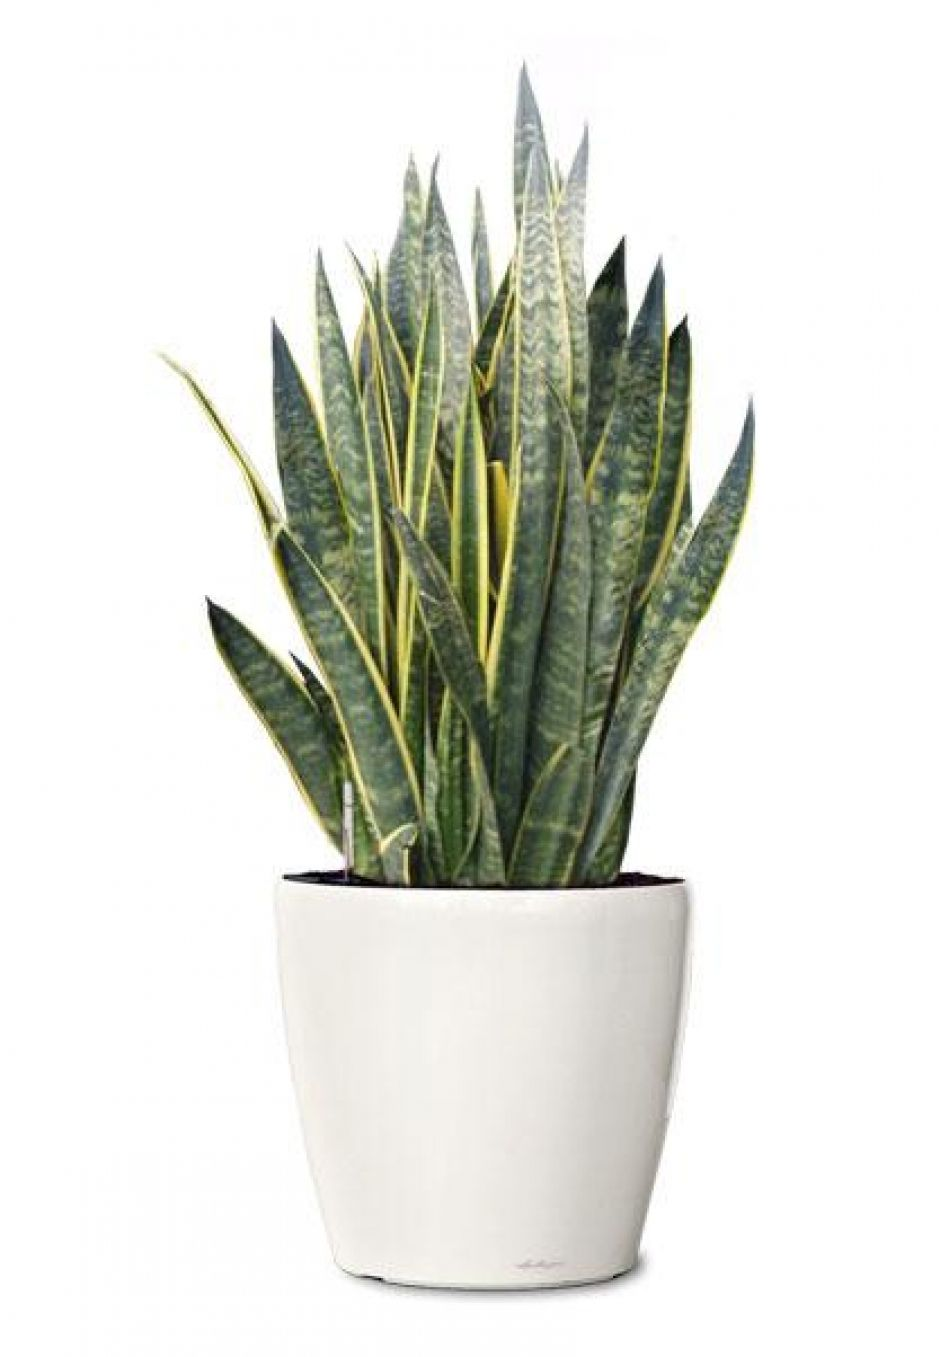 laurentii snake plant small ornamental plant sansevieria laurenti. Black Bedroom Furniture Sets. Home Design Ideas